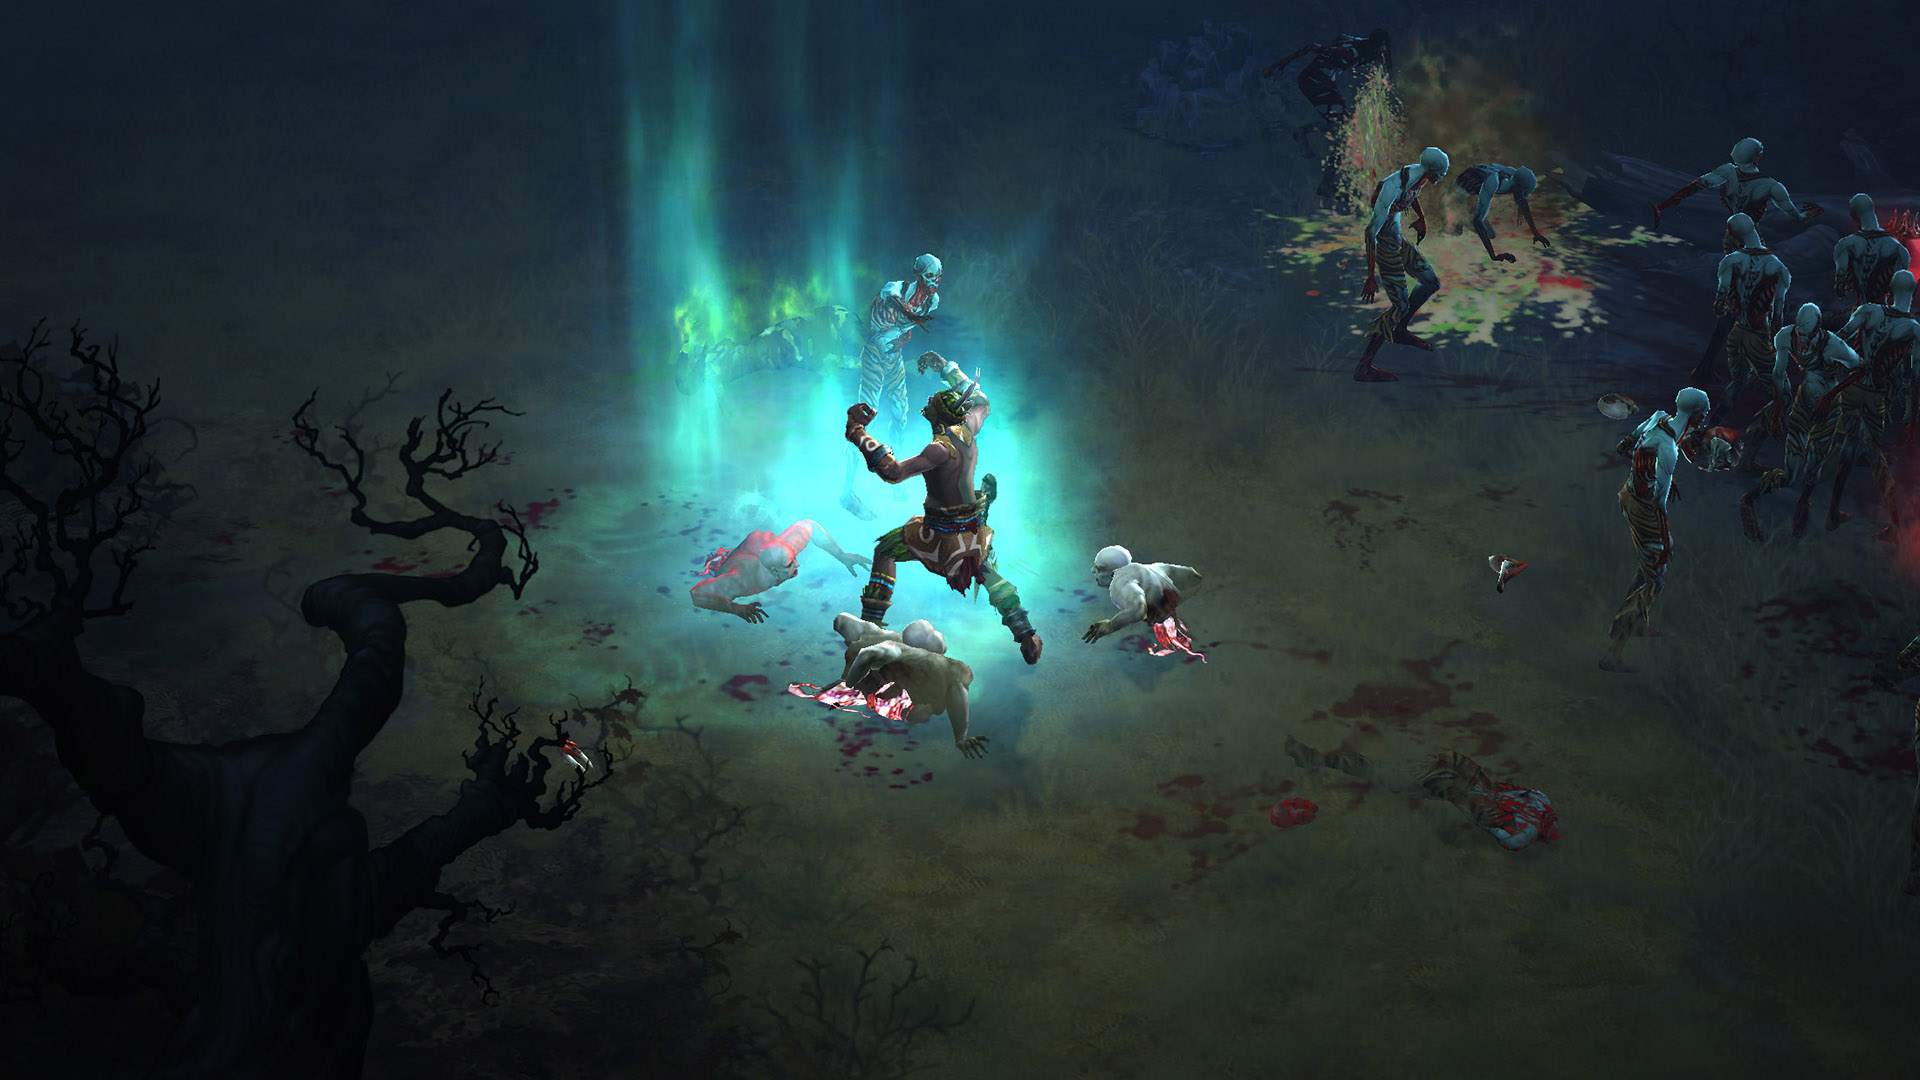 diablo 3 how to get to level 70